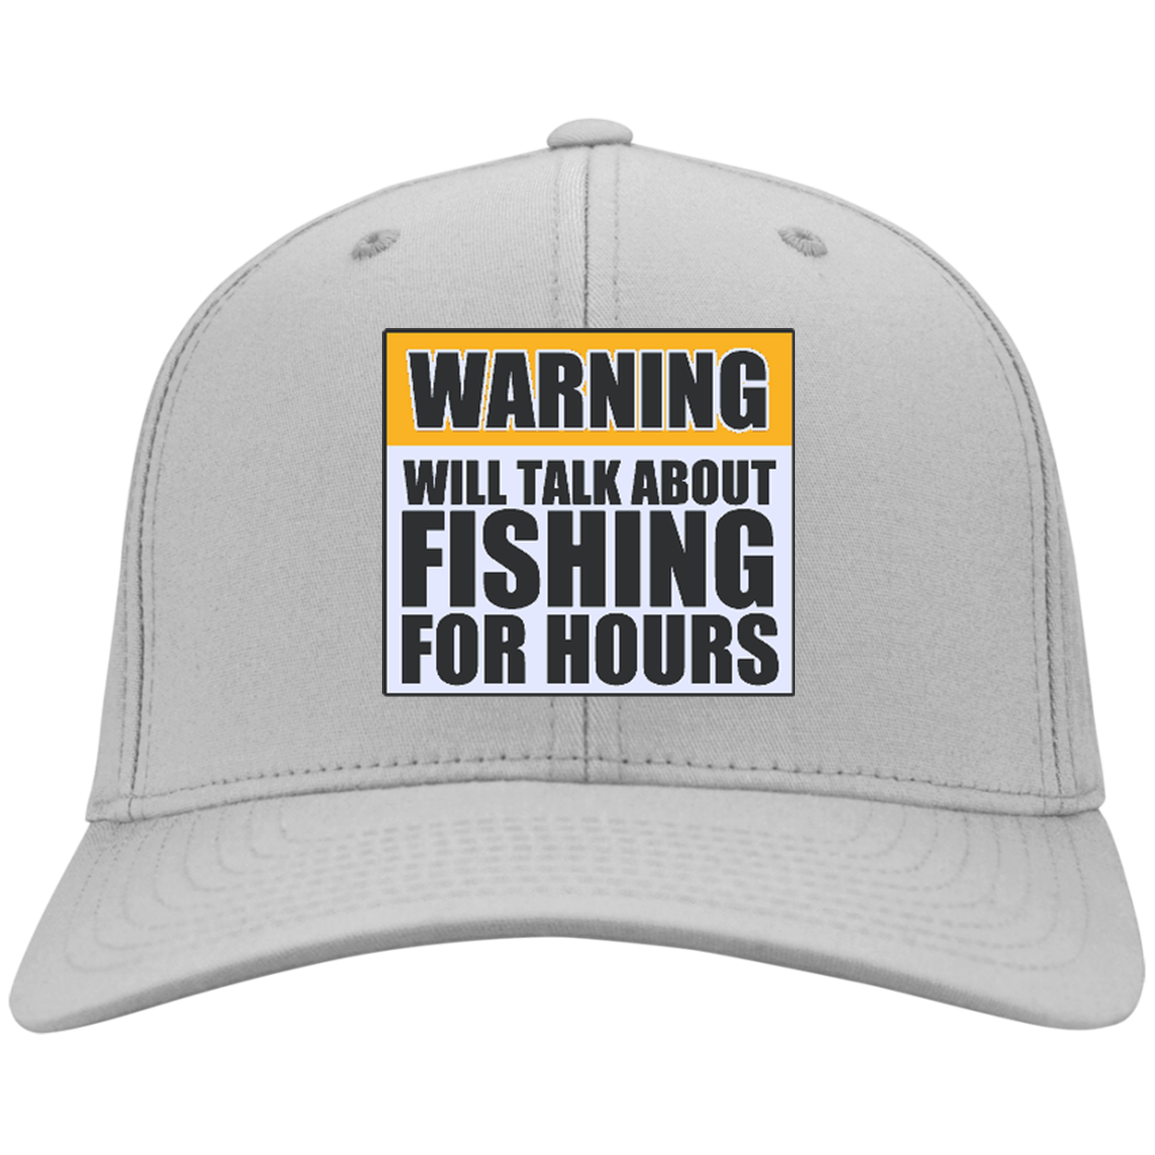 Will Talk About Fishing For Hours Personalized Twill Cap